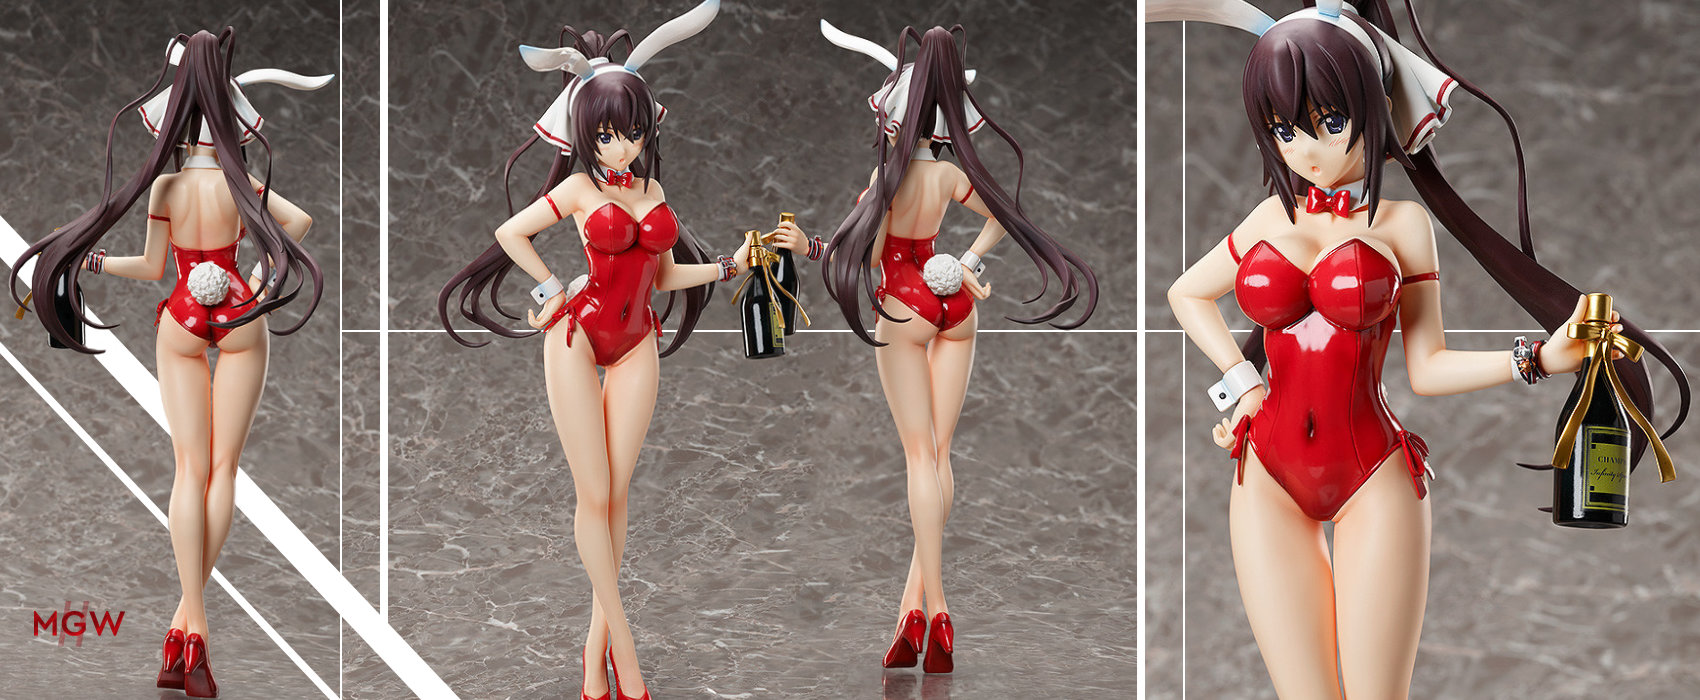 B style Shinonono Houki Bare Leg Bunny Ver. by FREEing from Infinite Stratos MyGrailWatch Anime Figure Guide